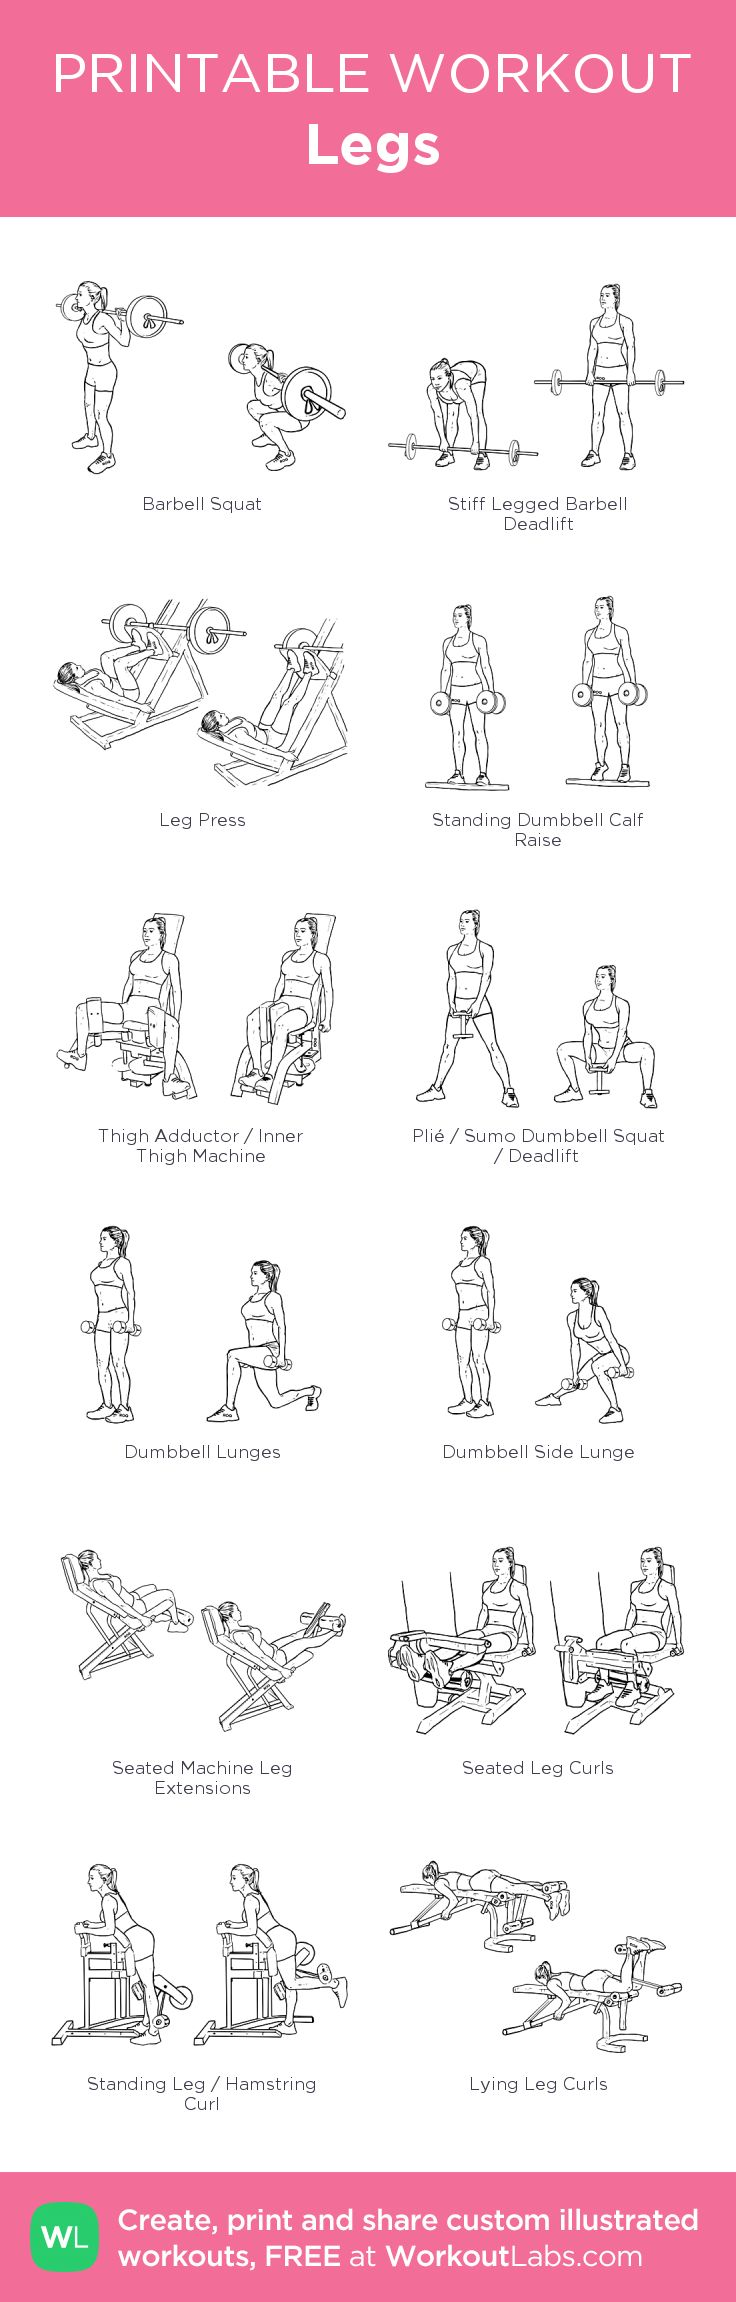 Legs Day: Customized printable workout